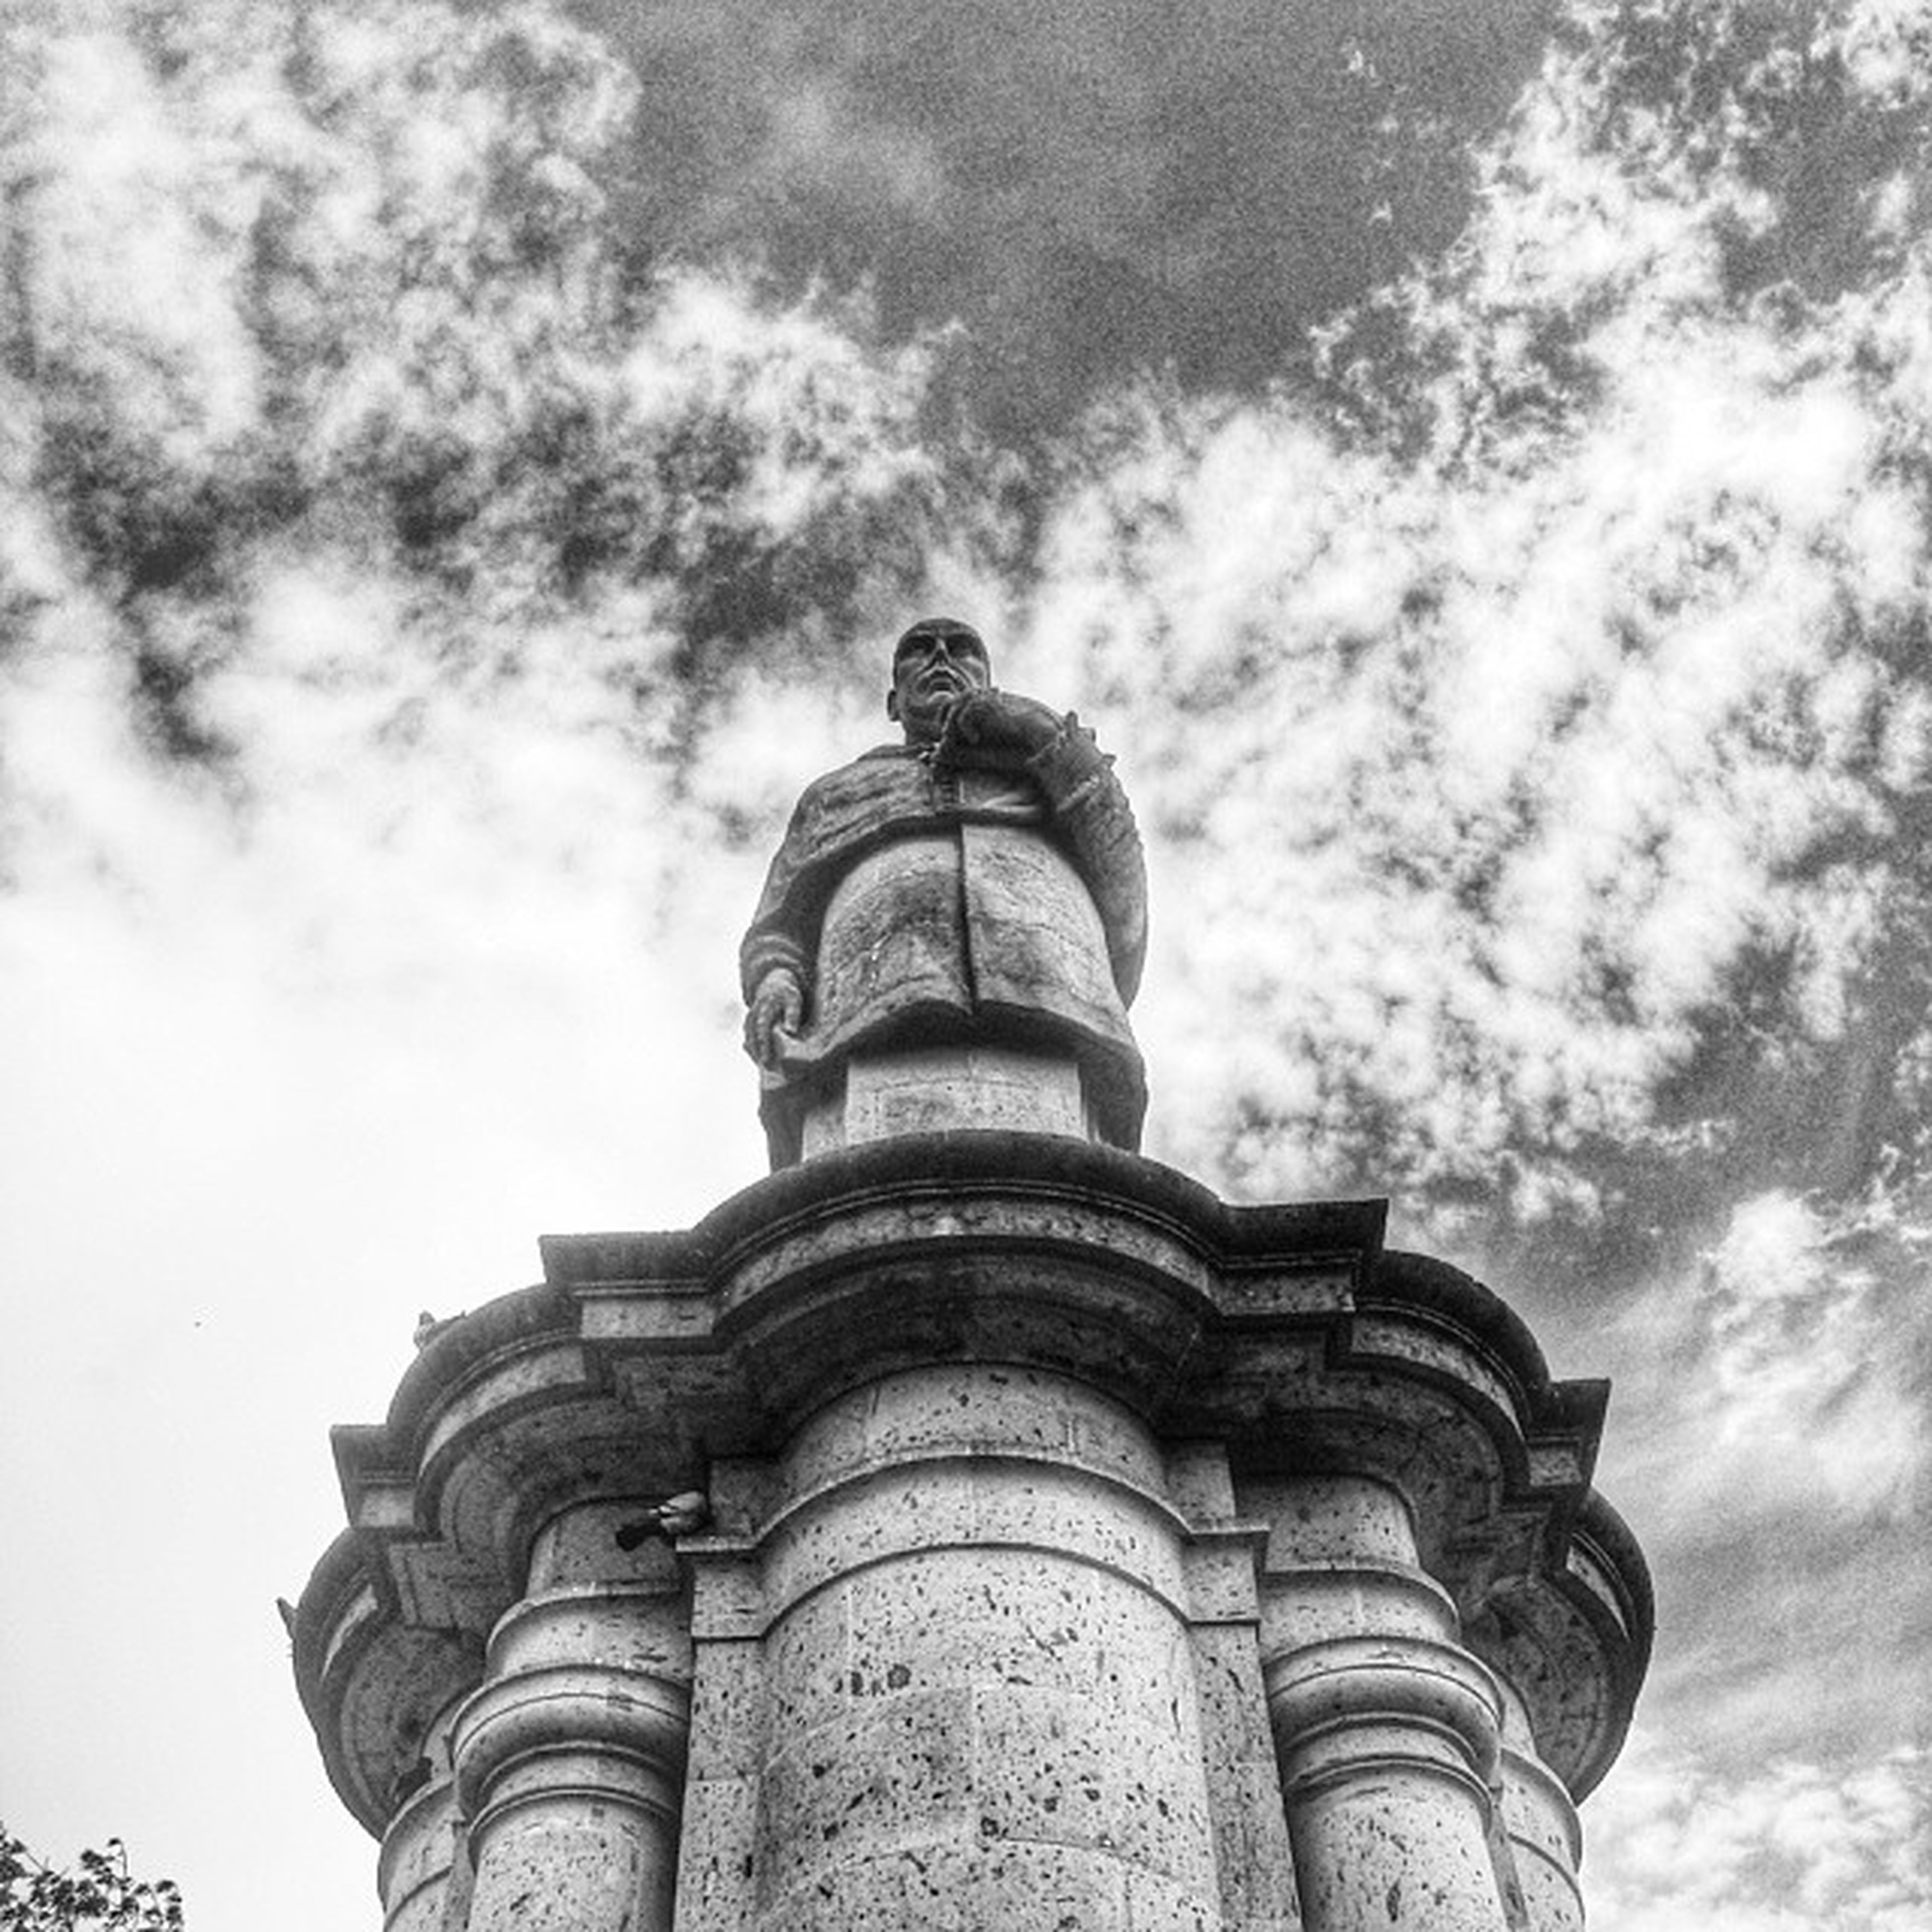 architecture, low angle view, built structure, building exterior, sky, famous place, history, statue, sculpture, travel destinations, cloud - sky, tourism, travel, international landmark, human representation, art and craft, capital cities, architectural column, cloud, religion